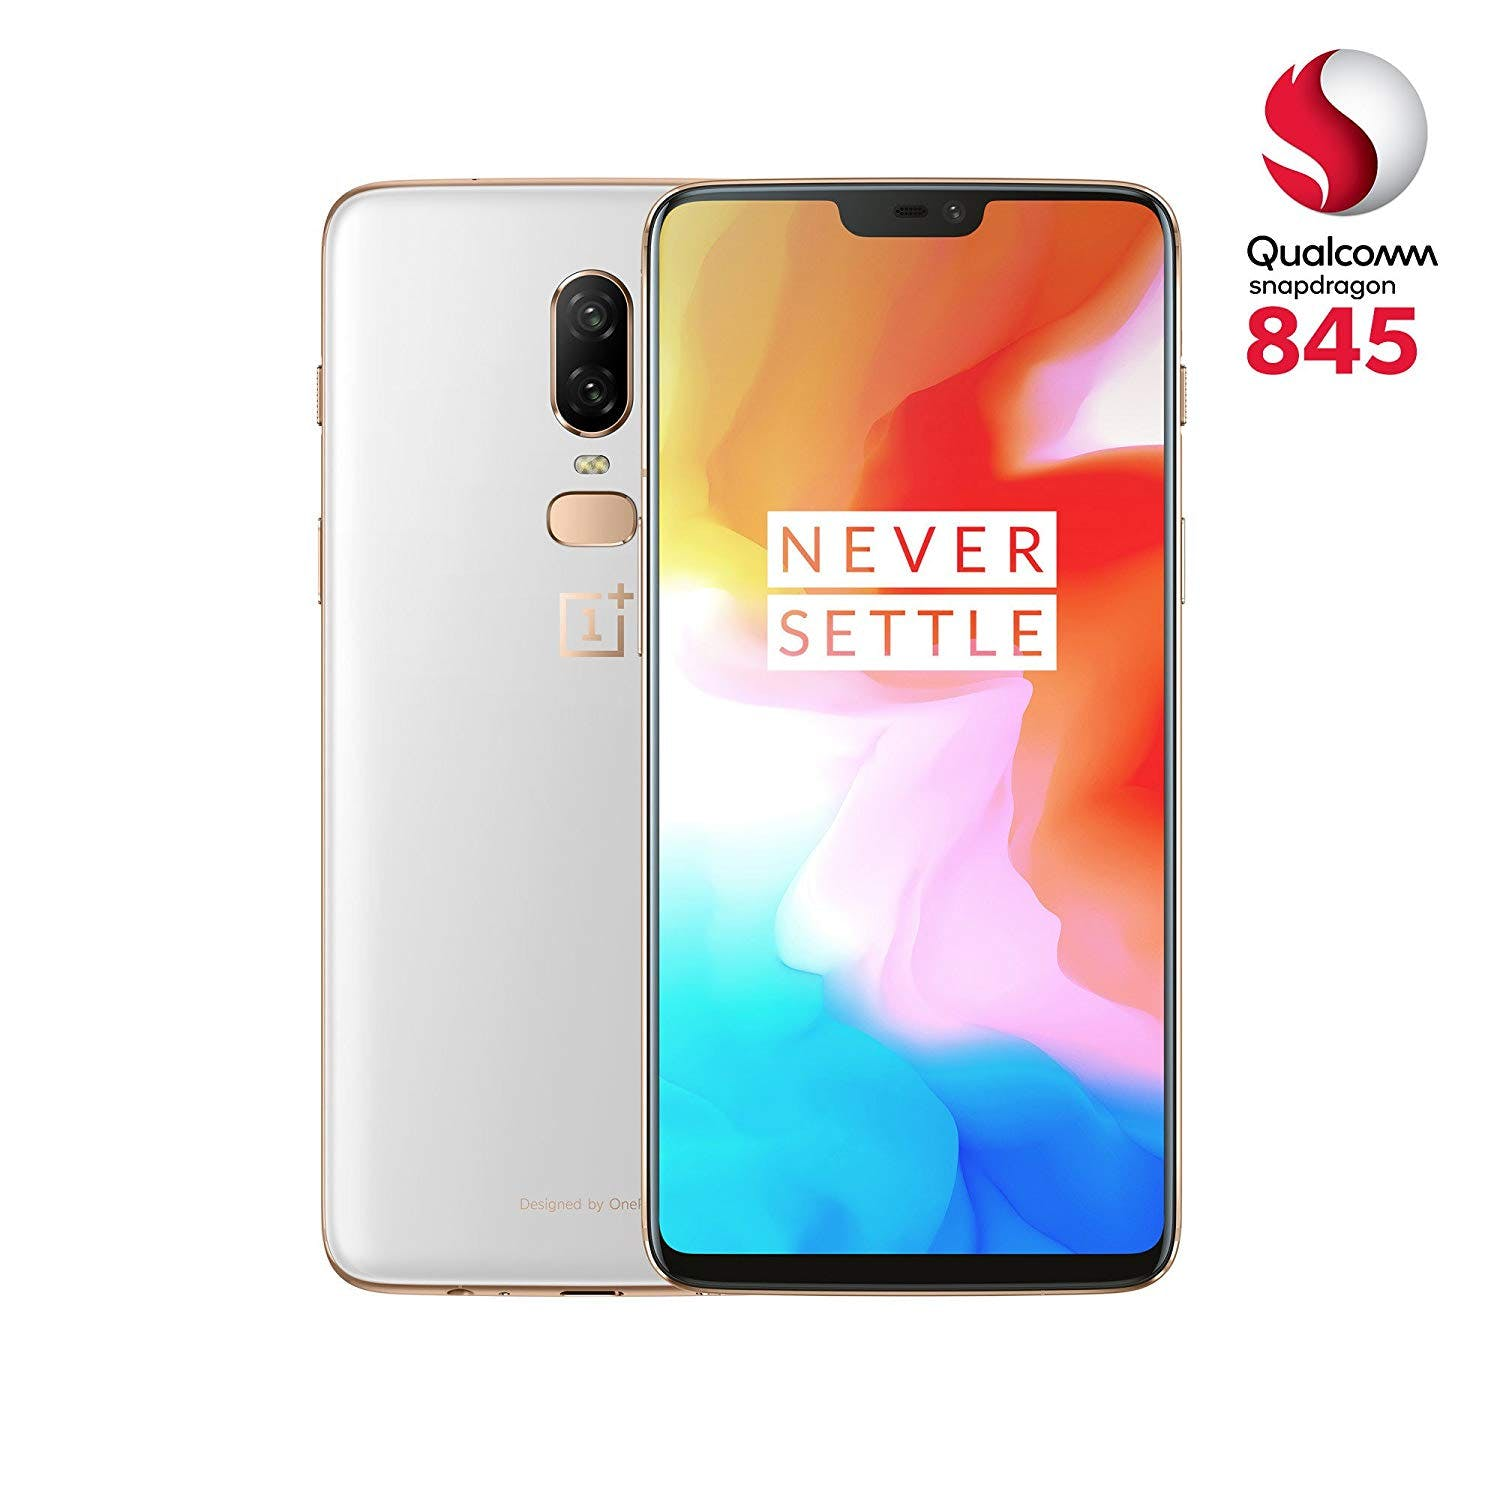 "{:tag :a, :attrs {:href ""https://www.amazon.co.uk/OnePlus-Android-Version-SIM-Free-Smartphone-White/dp/B07HQWCJTX?ref_=Oct_DLandingS_PC_57e8667f_21&smid=A3P5ROKL5A1OLE""}, :content (""OnePlus 6 Dual SIM 128GB"")}"